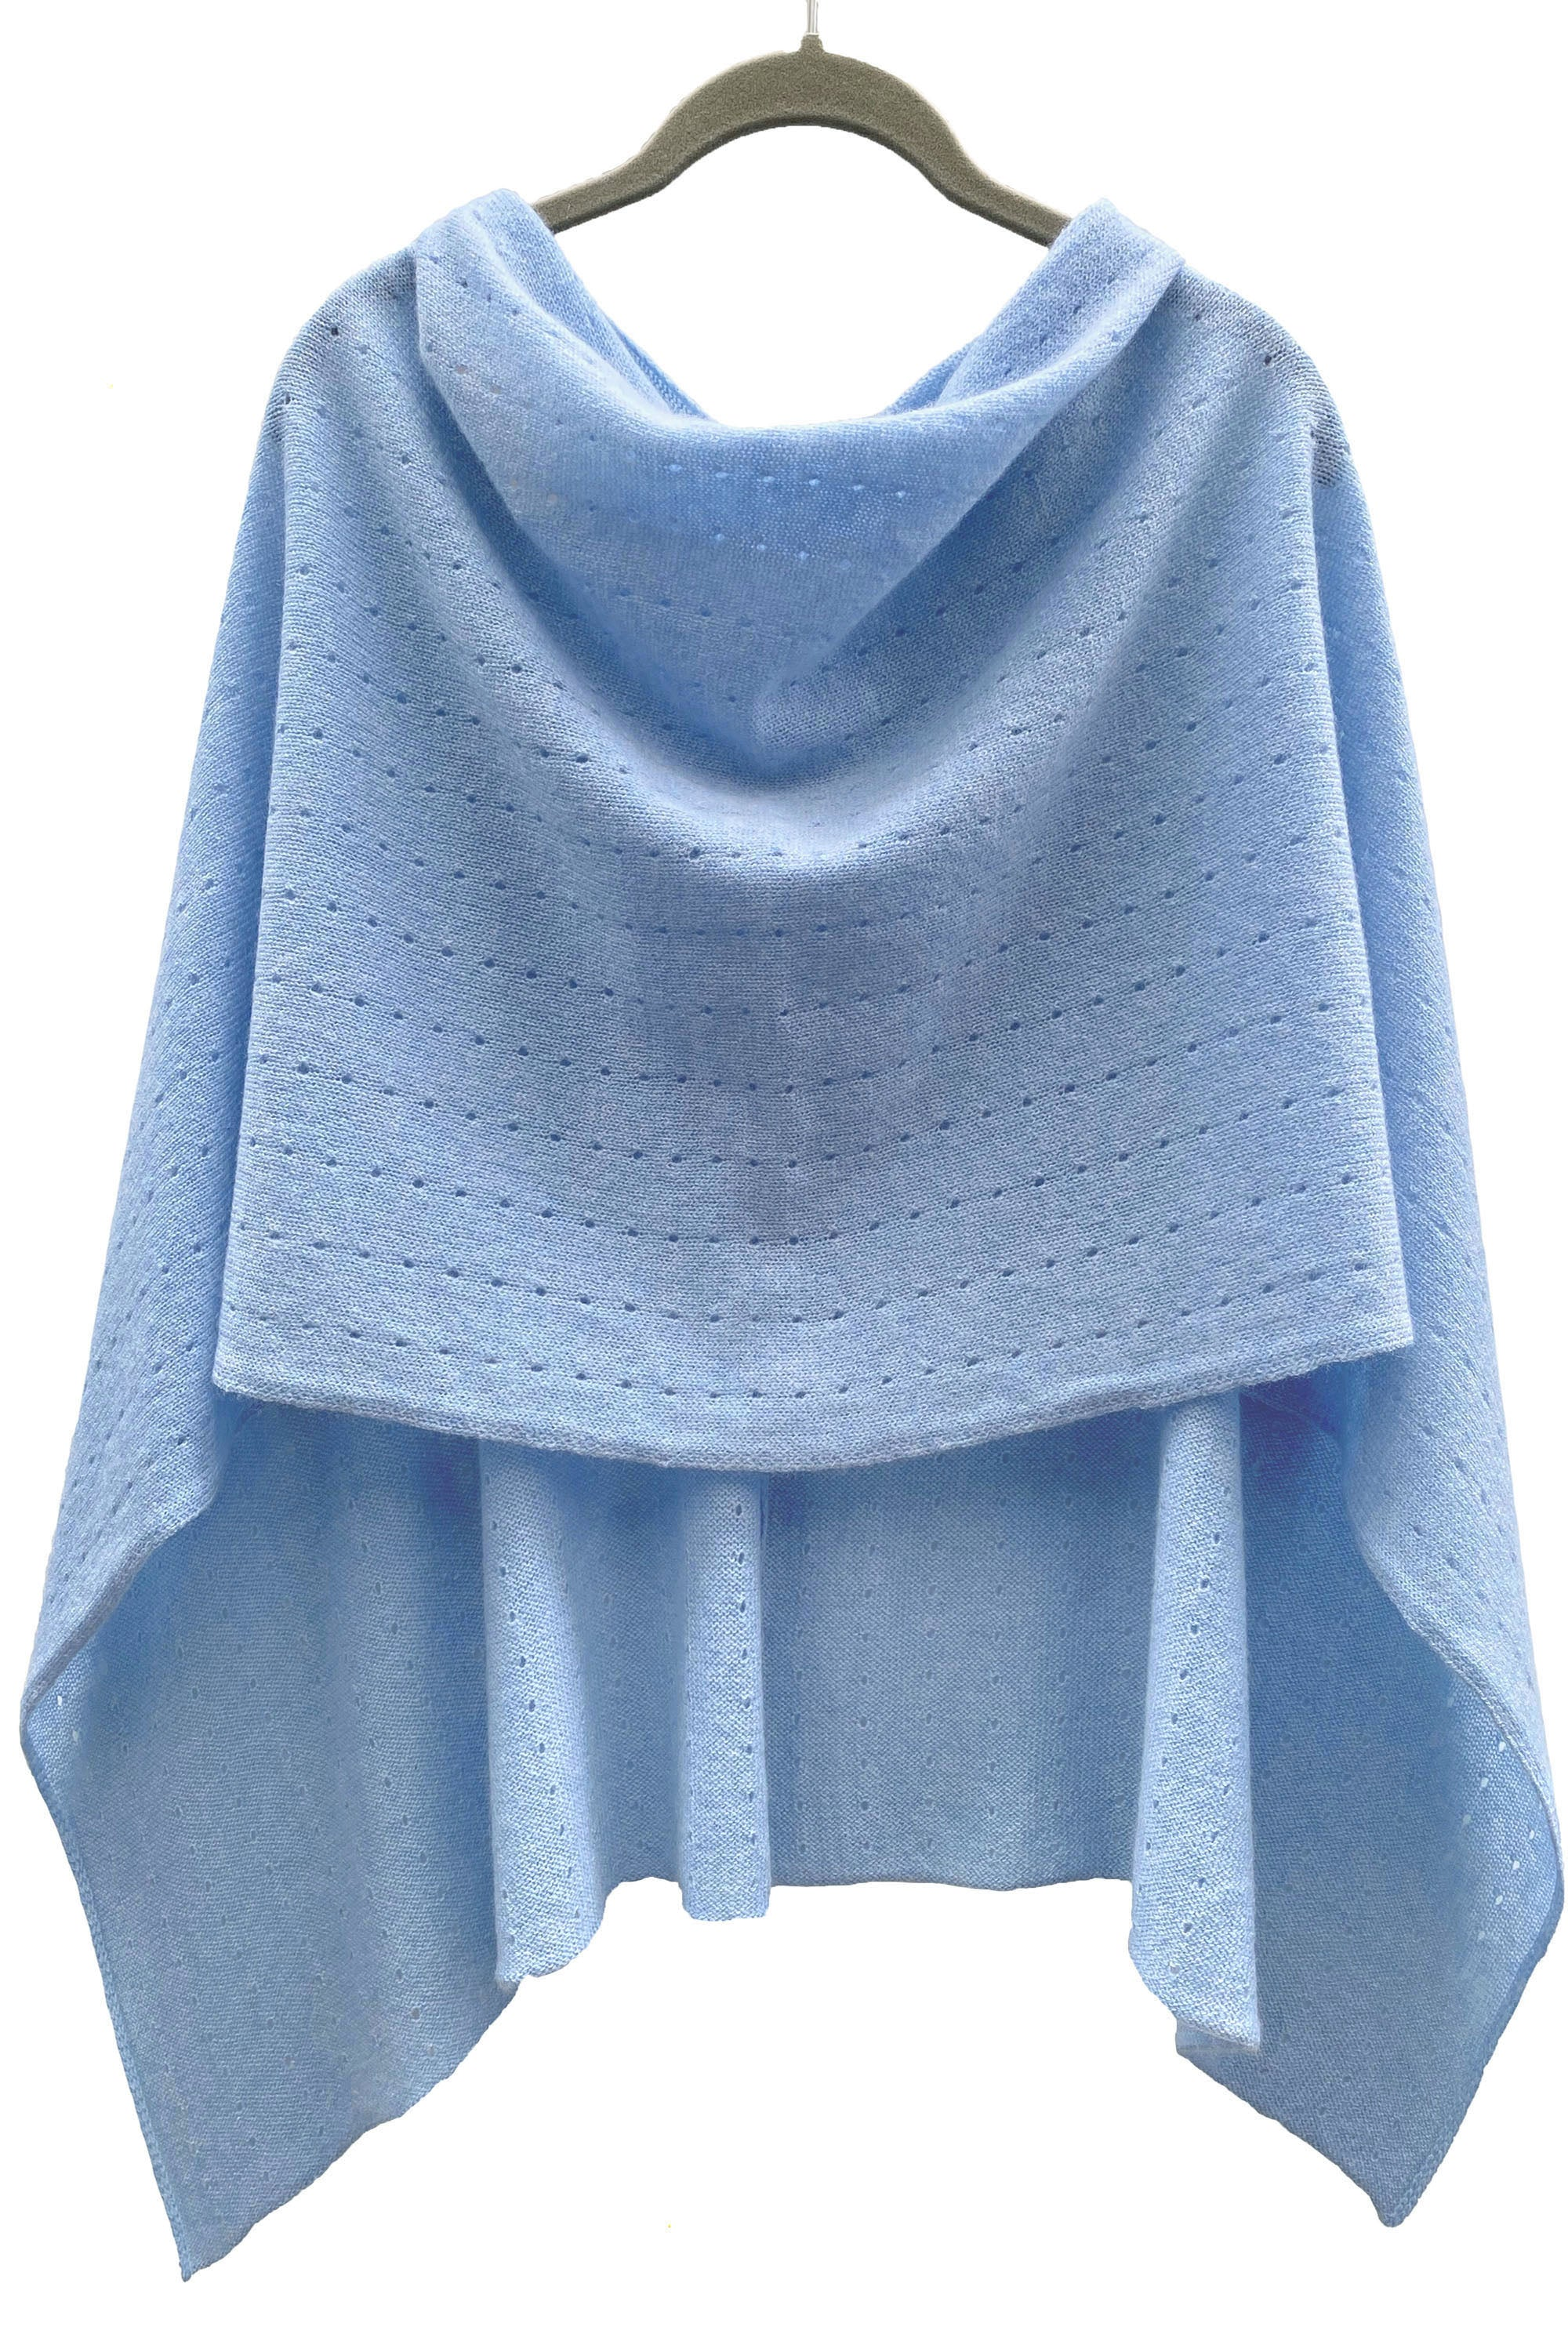 Powder blue Cashmere Poncho UK, Women Wrap, Cape, Shawls, Scarf, shawl, cardigan, light weight, summer poncho, ladies small button poncho sweater sale | SEMON Cashmere